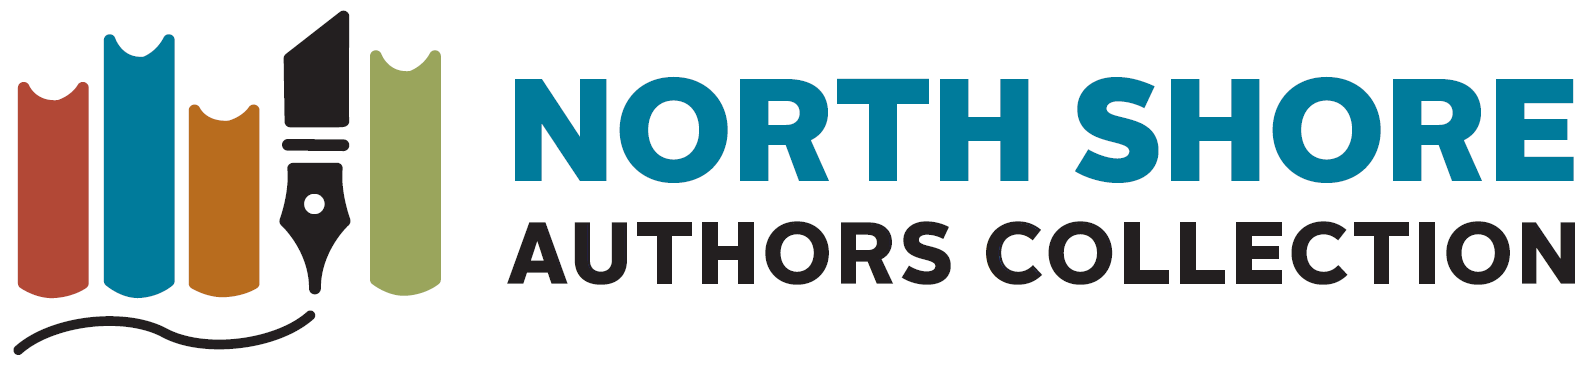 North Shore Authors Collection